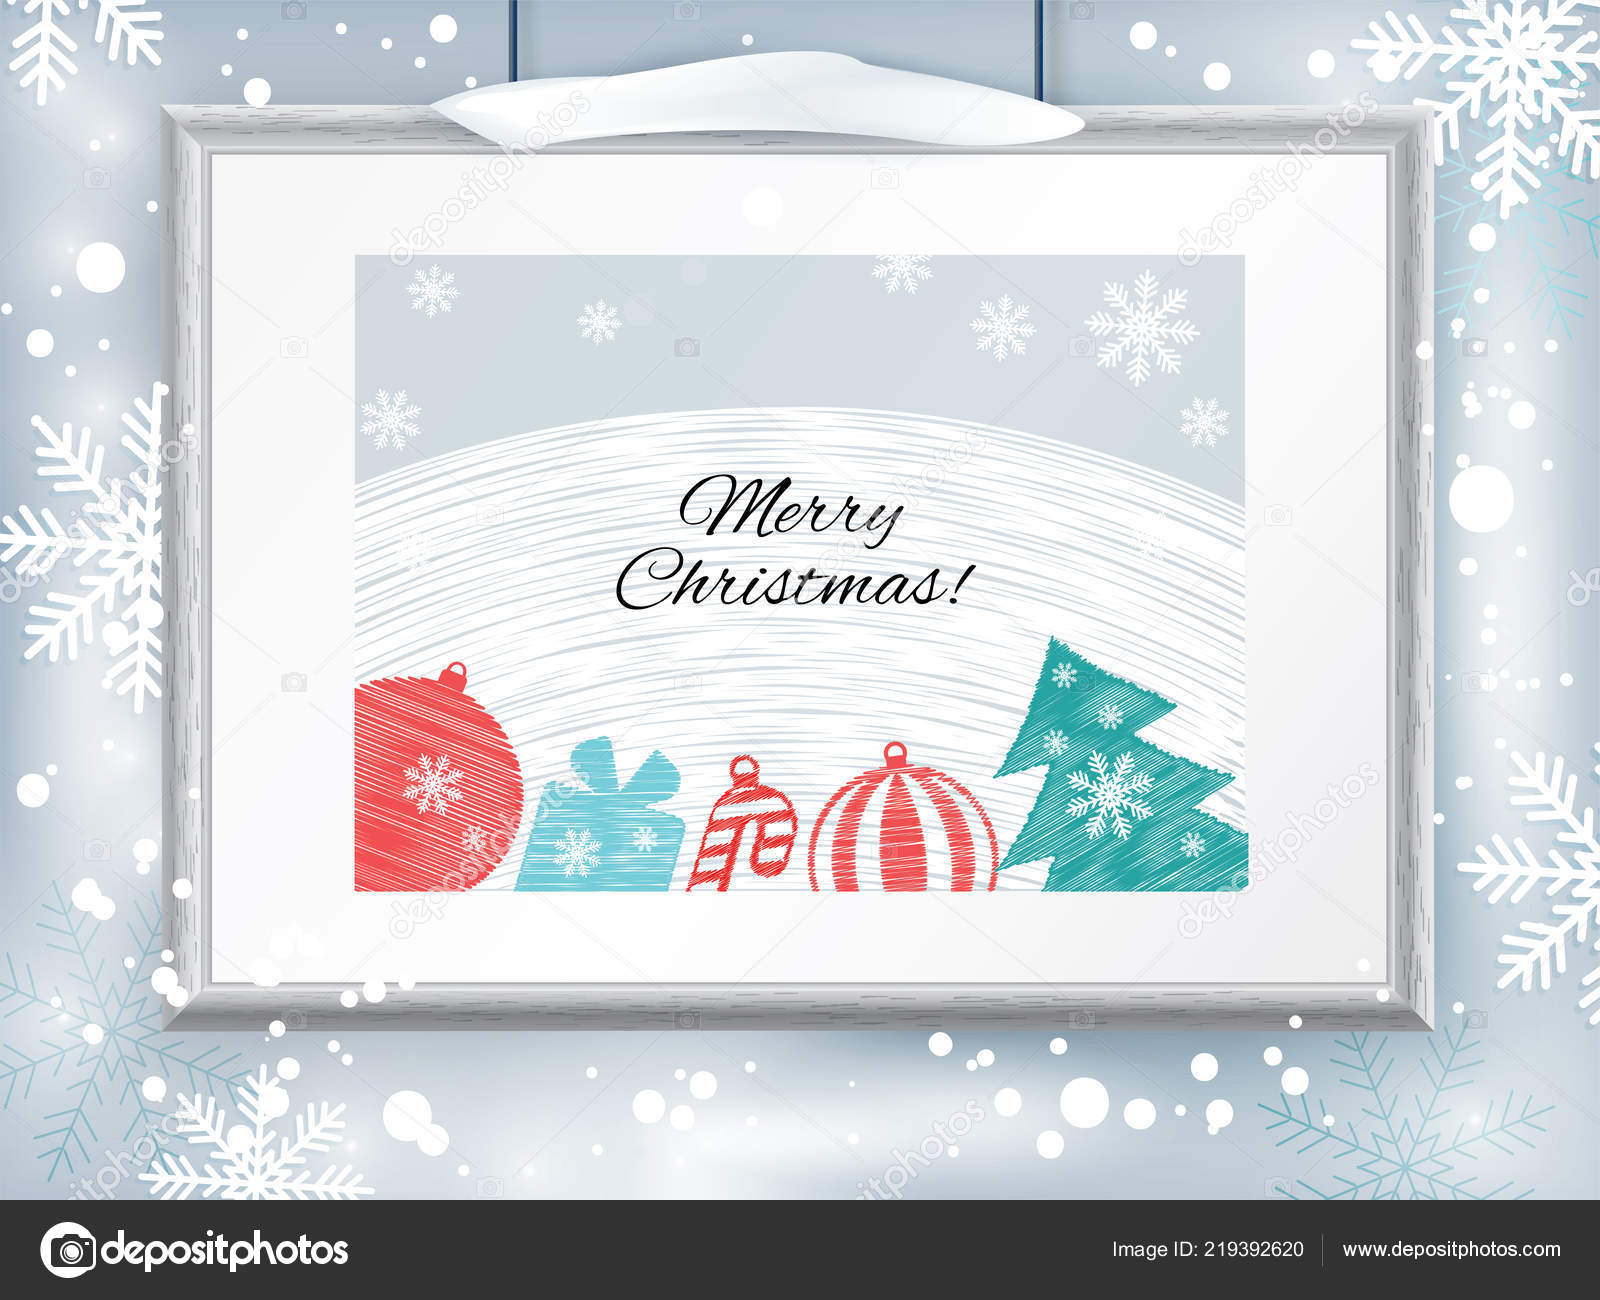 Christmas Certificate Border.Christmas Certificate With Grey Realistic Border On